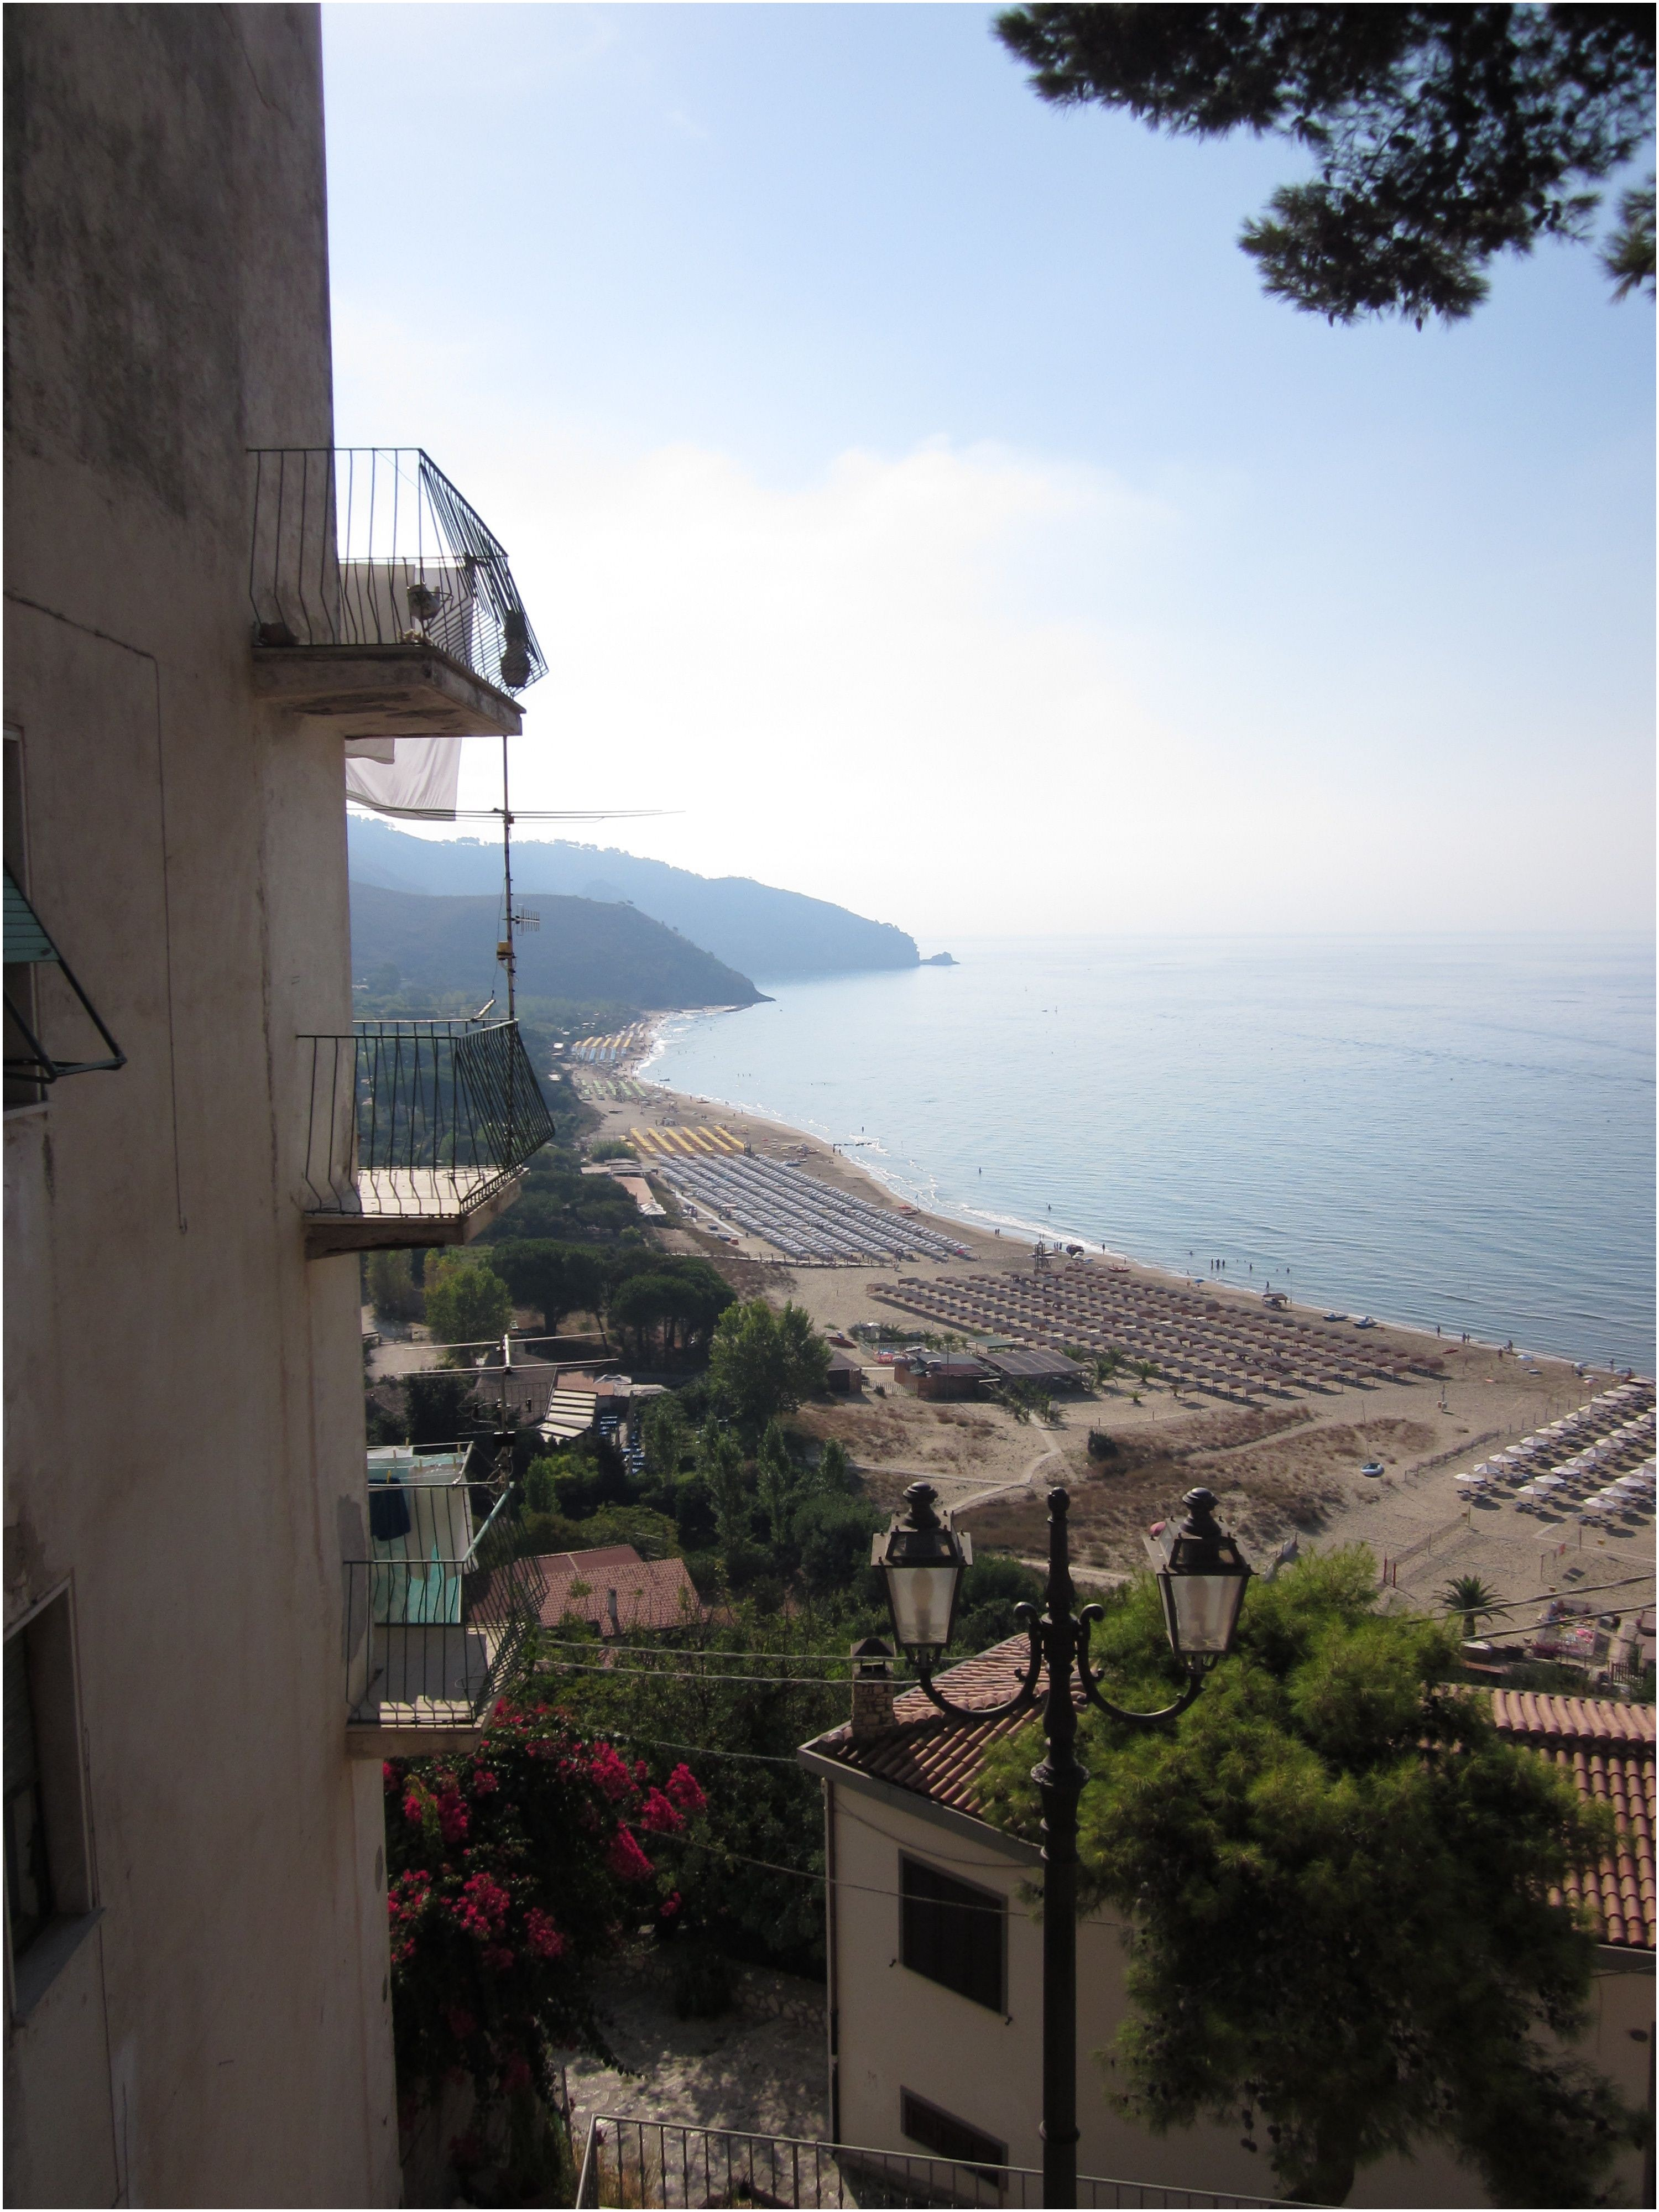 Beach Holiday In Italy In September Awesome Sperlonga Beach Italy In September